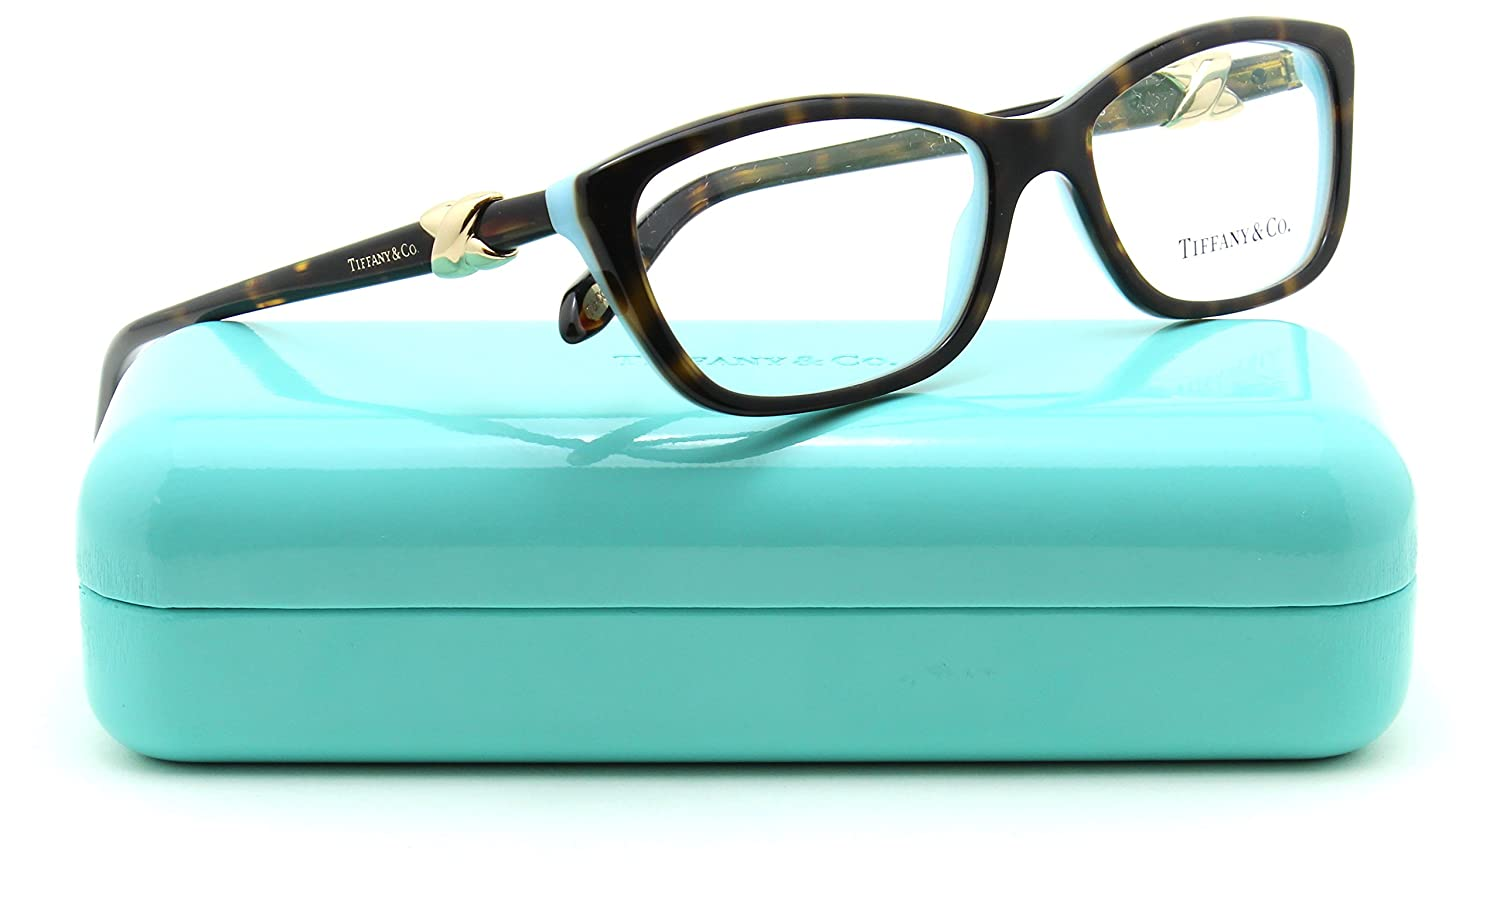 bc8bf592745 Tiffany   Co. TF 2074 Women Cat-Eye Eyeglasses RX - able Frame 8216 ...